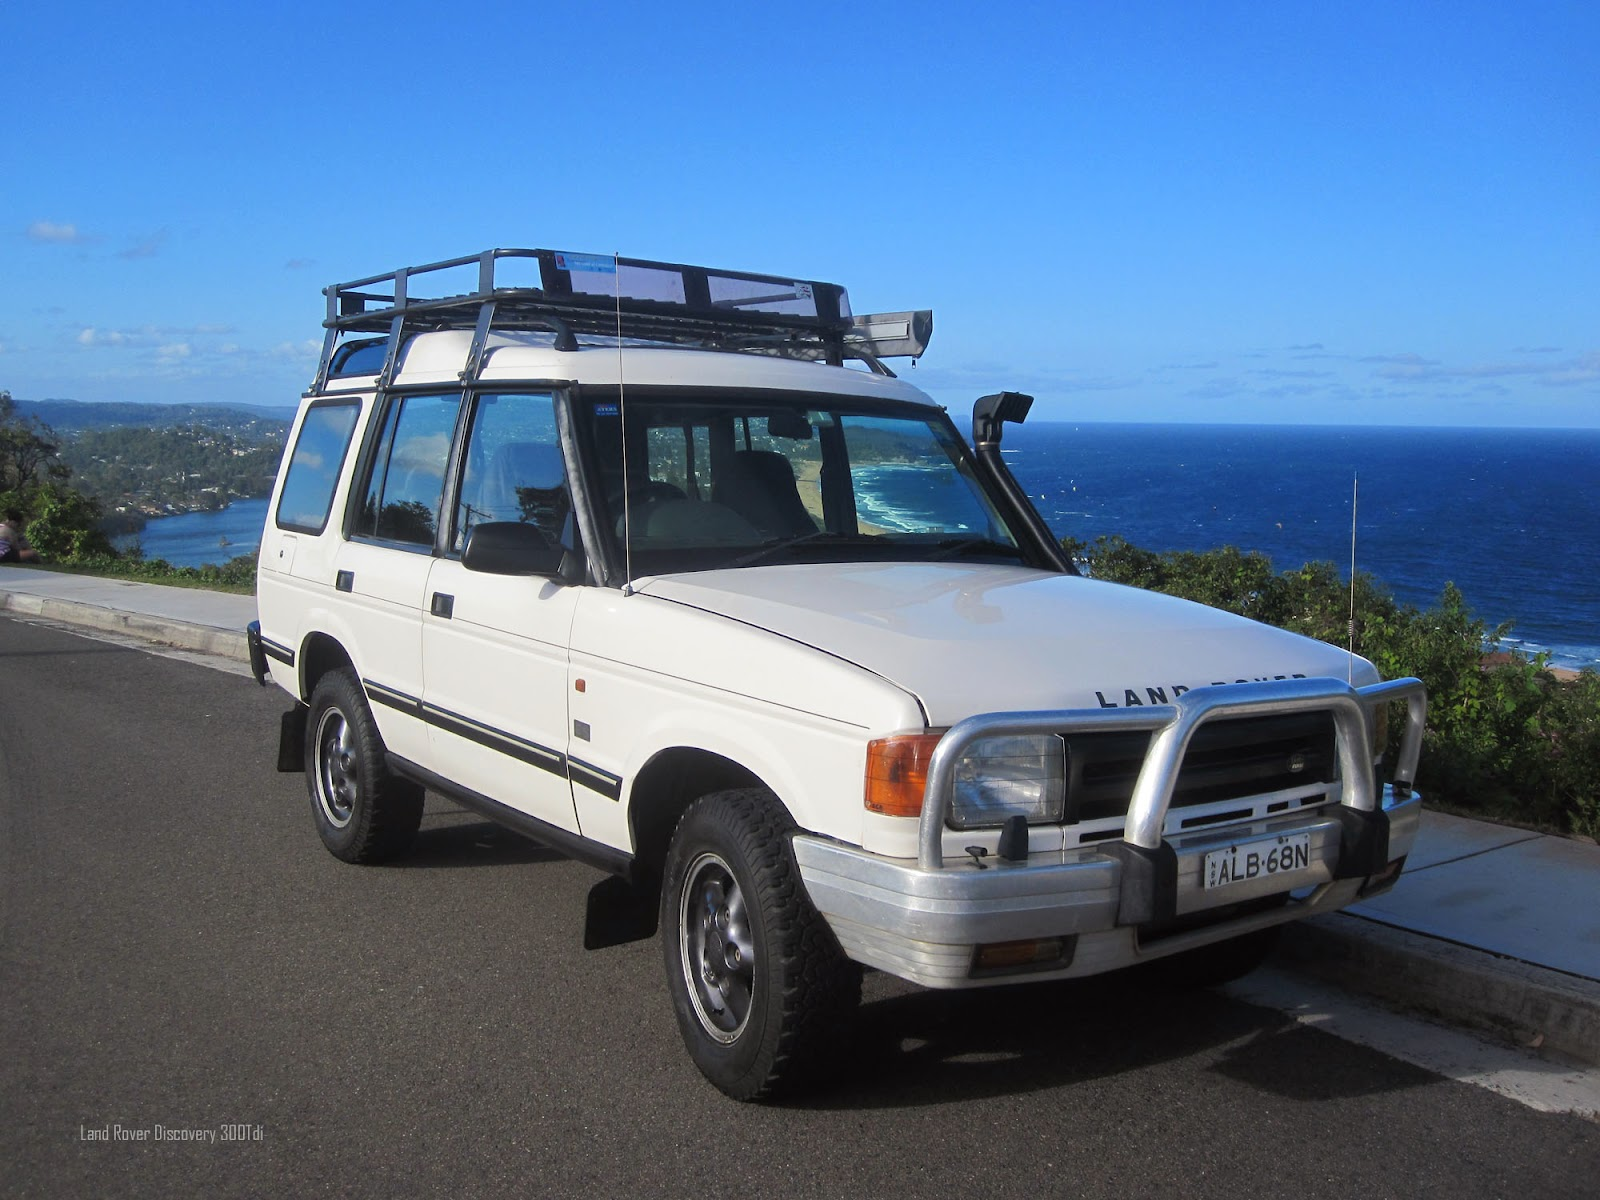 sale discovery for xd i forums rover side forum landrover land